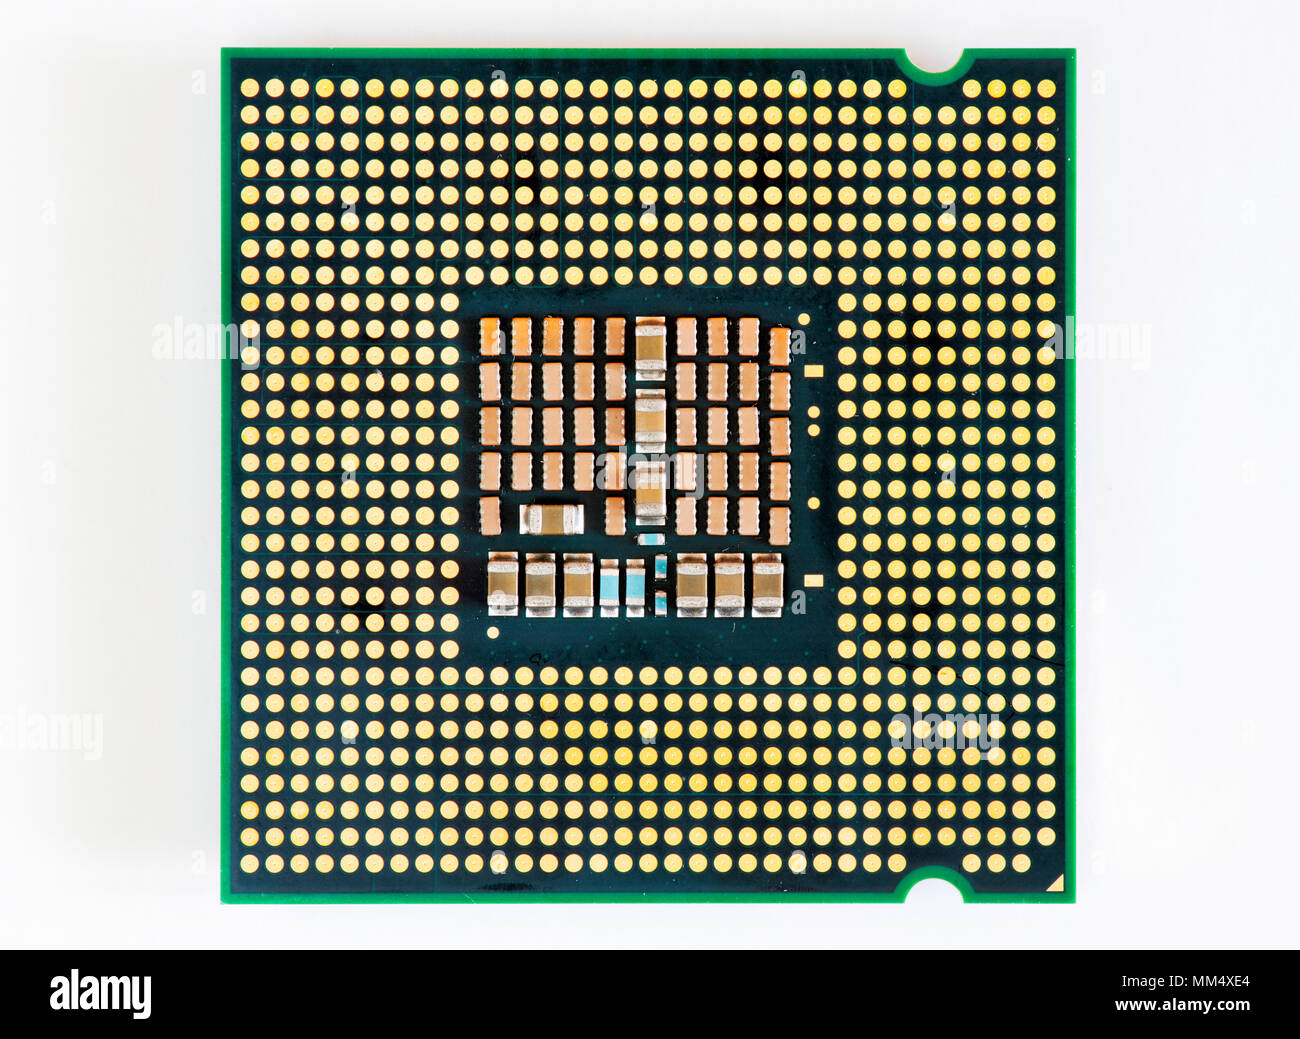 Electrical contacts on the backside of Intel Q6600 CPU (Central Processing Unit). - Stock Image